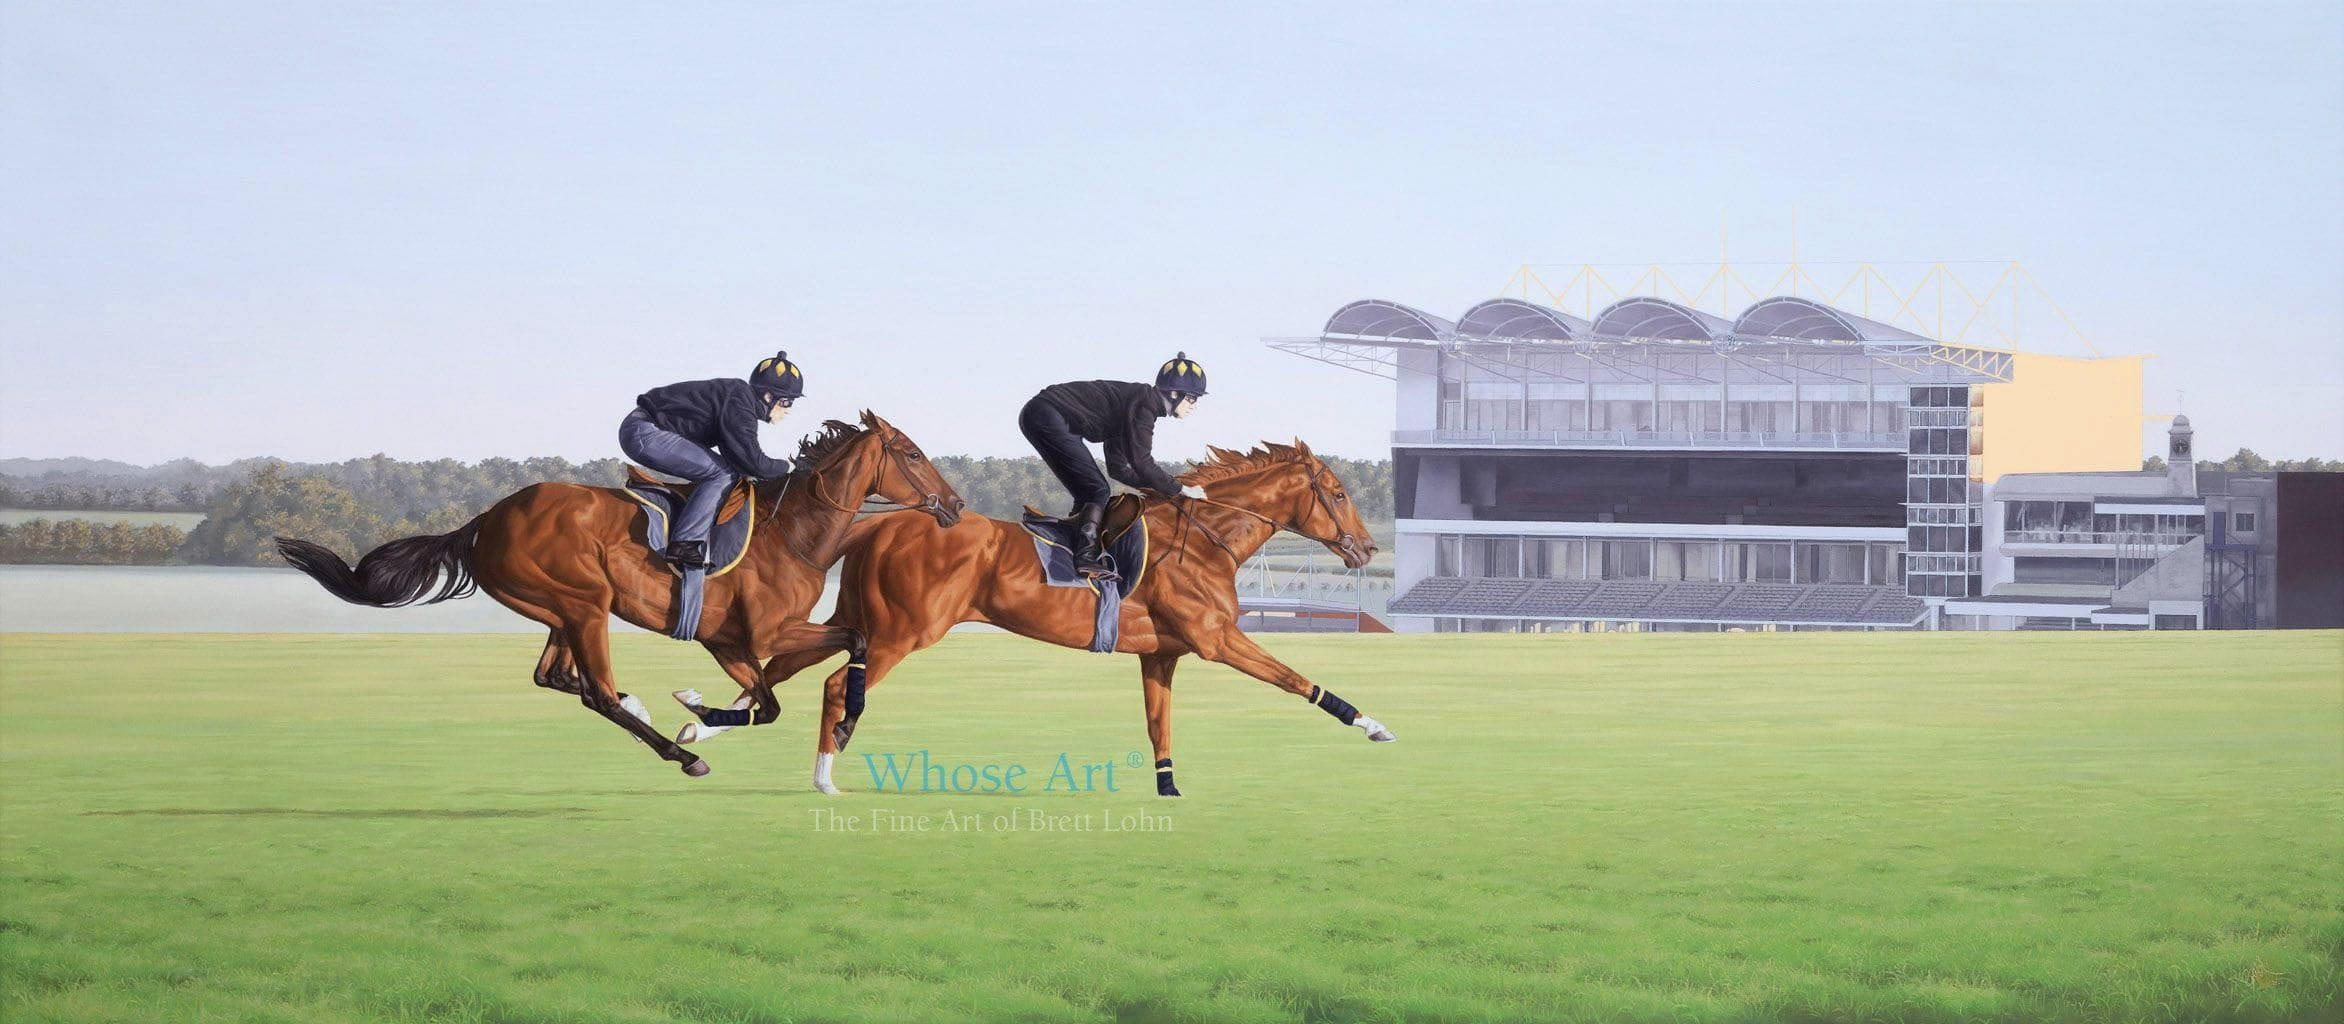 Racehorse art oil painting of two thoroughbreds galloping at Newmarket at sunrise with the millenium grandstand nearby.